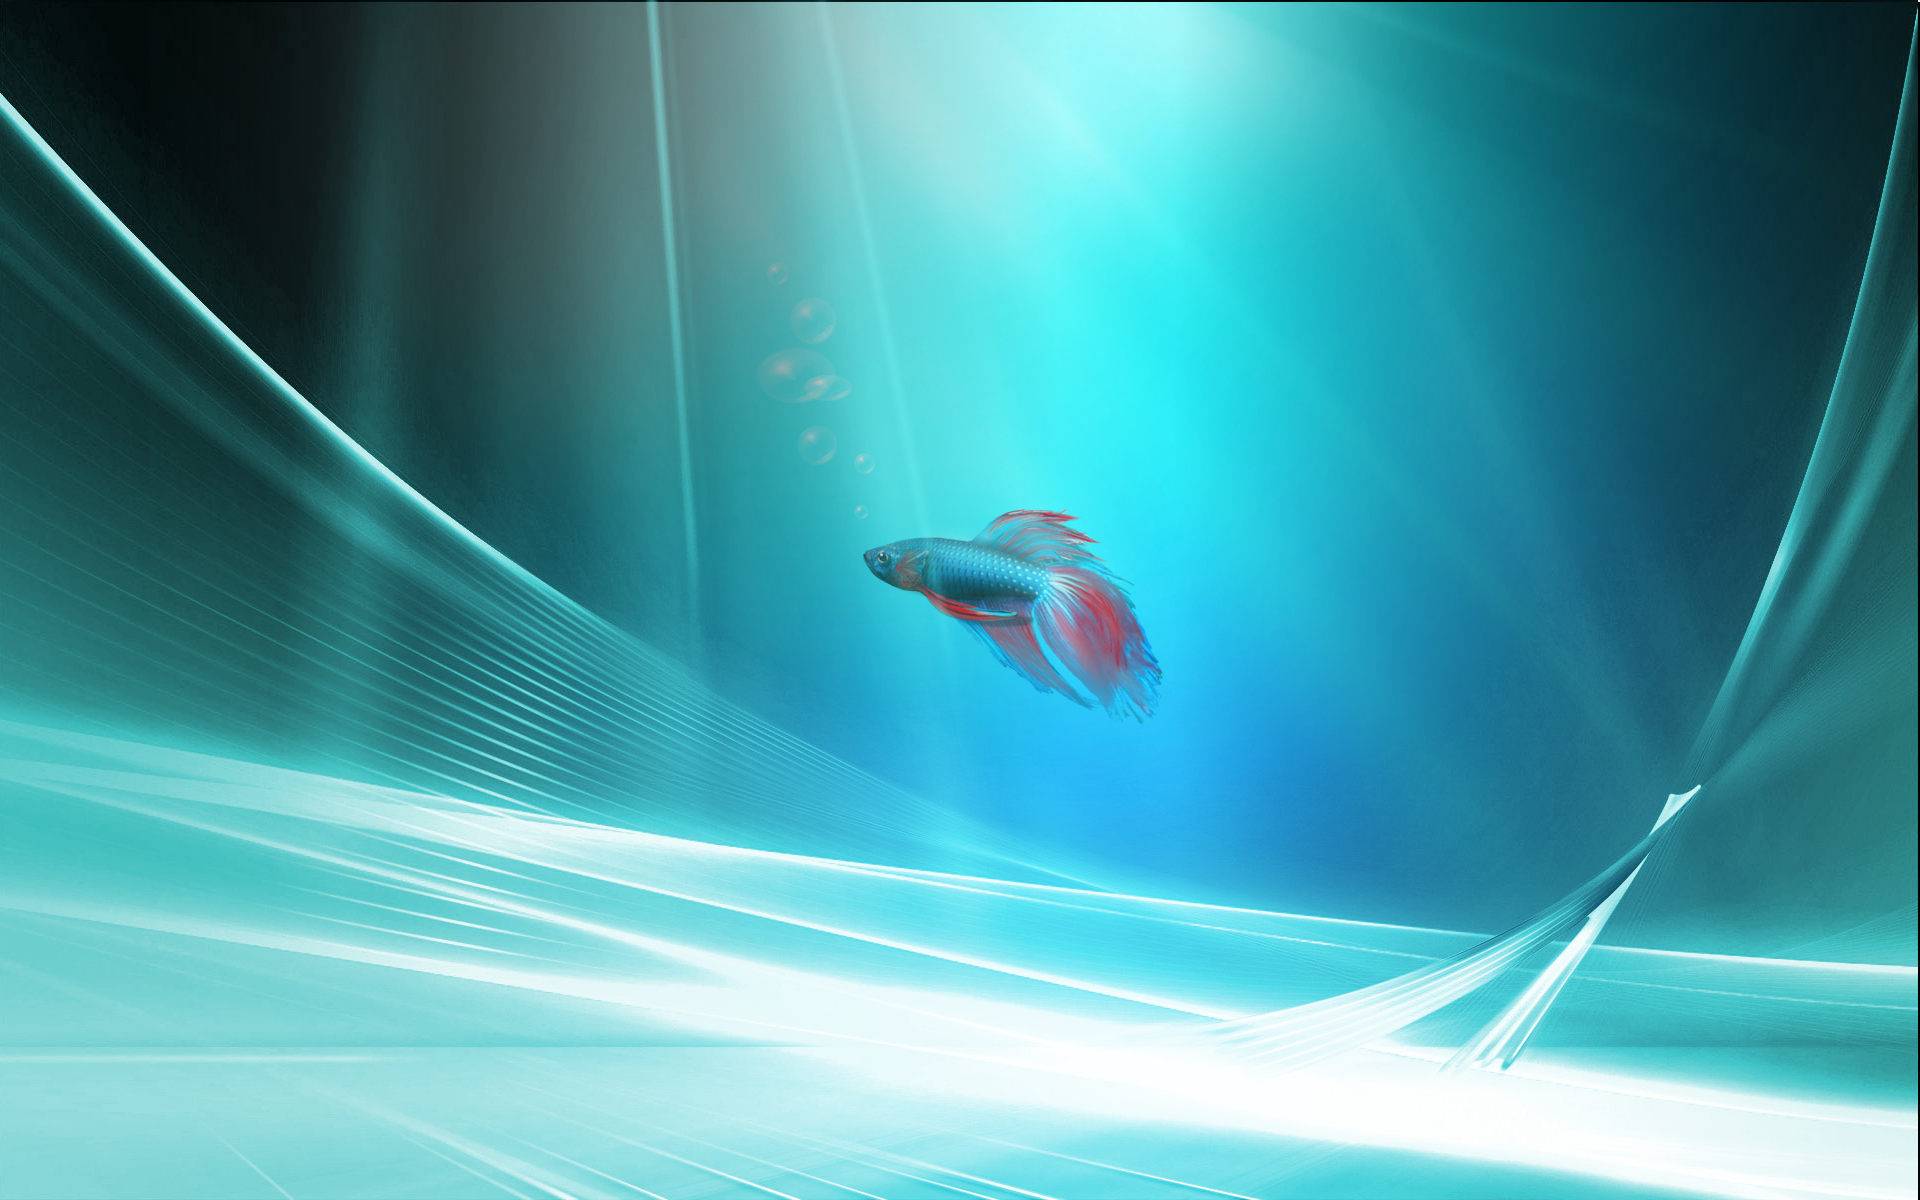 Windows 7 fish2 wallpaper by cosmoware design on deviantart for Architecture wallpaper windows 7